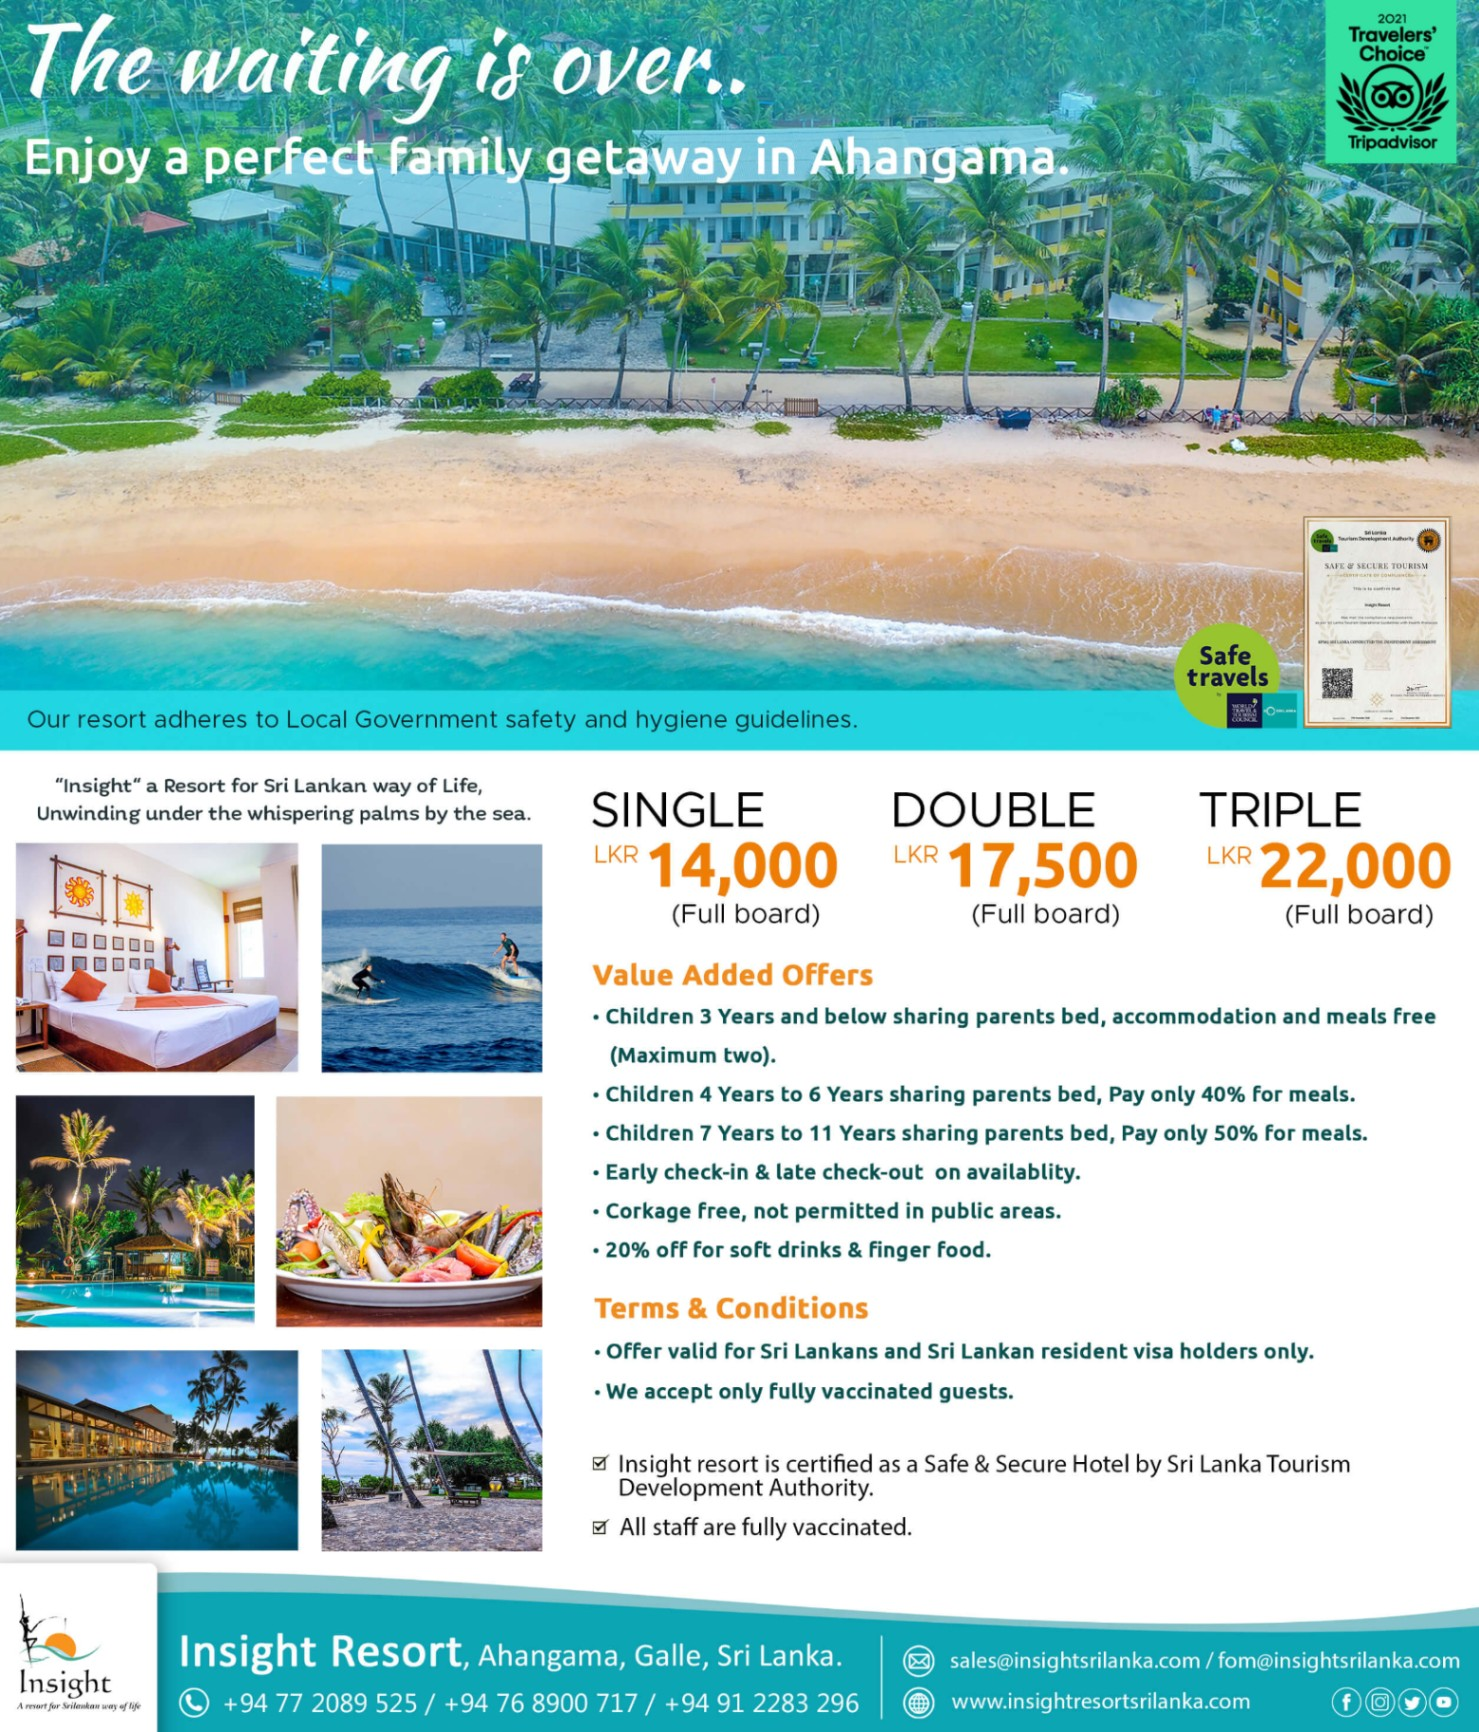 The waiting is over.. Enjoy a perfect family getaway in Ahangama